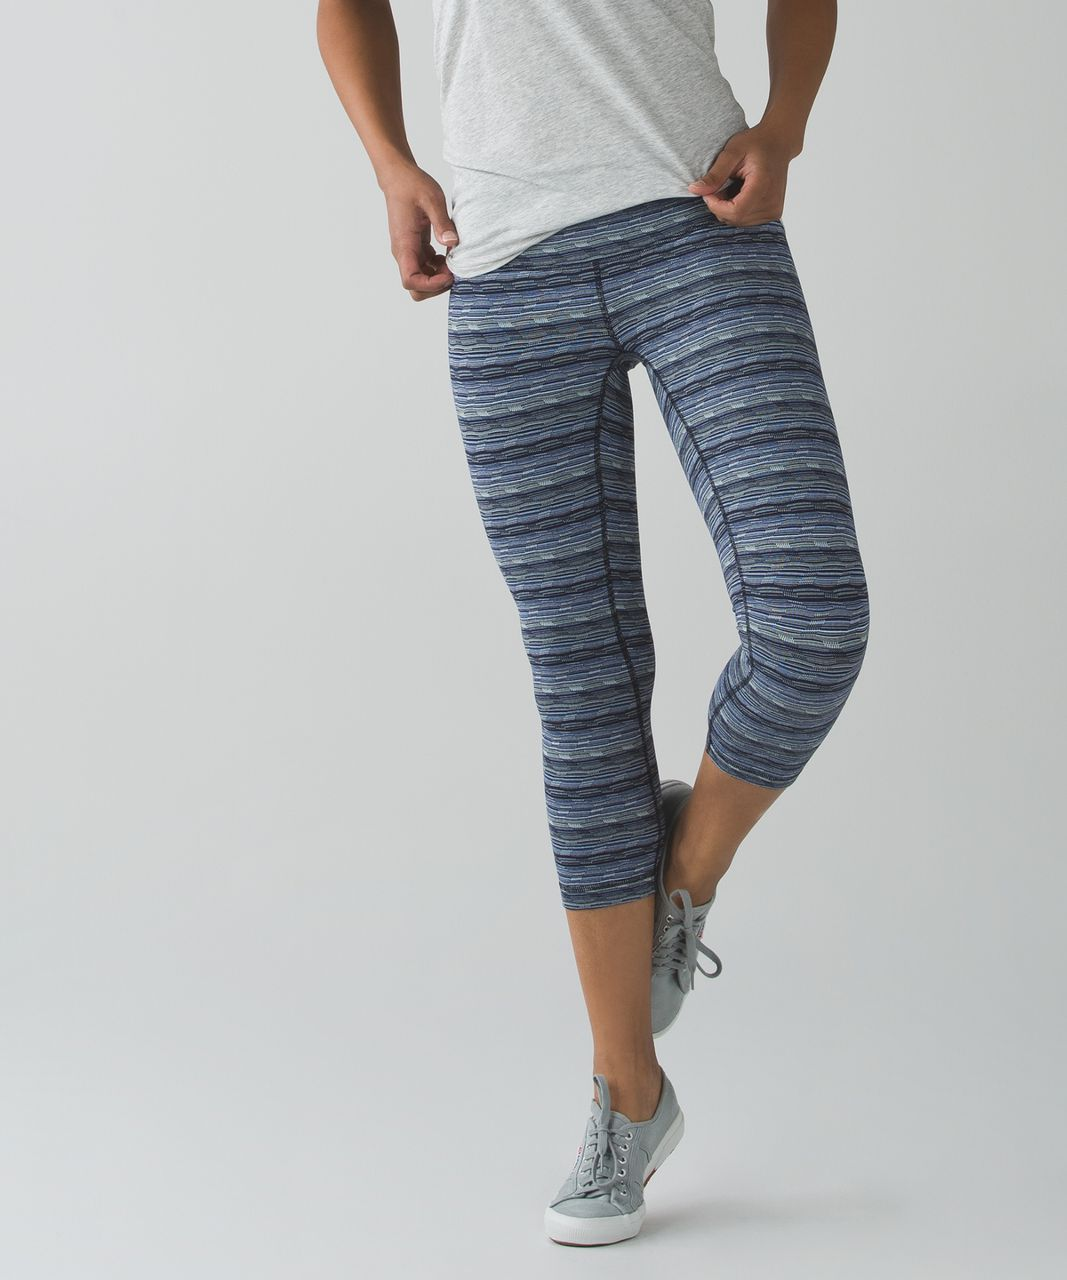 "Lululemon Wunder Under Crop III (21 1/2"") - Space Dye Twist Sapphire Blue Multi"